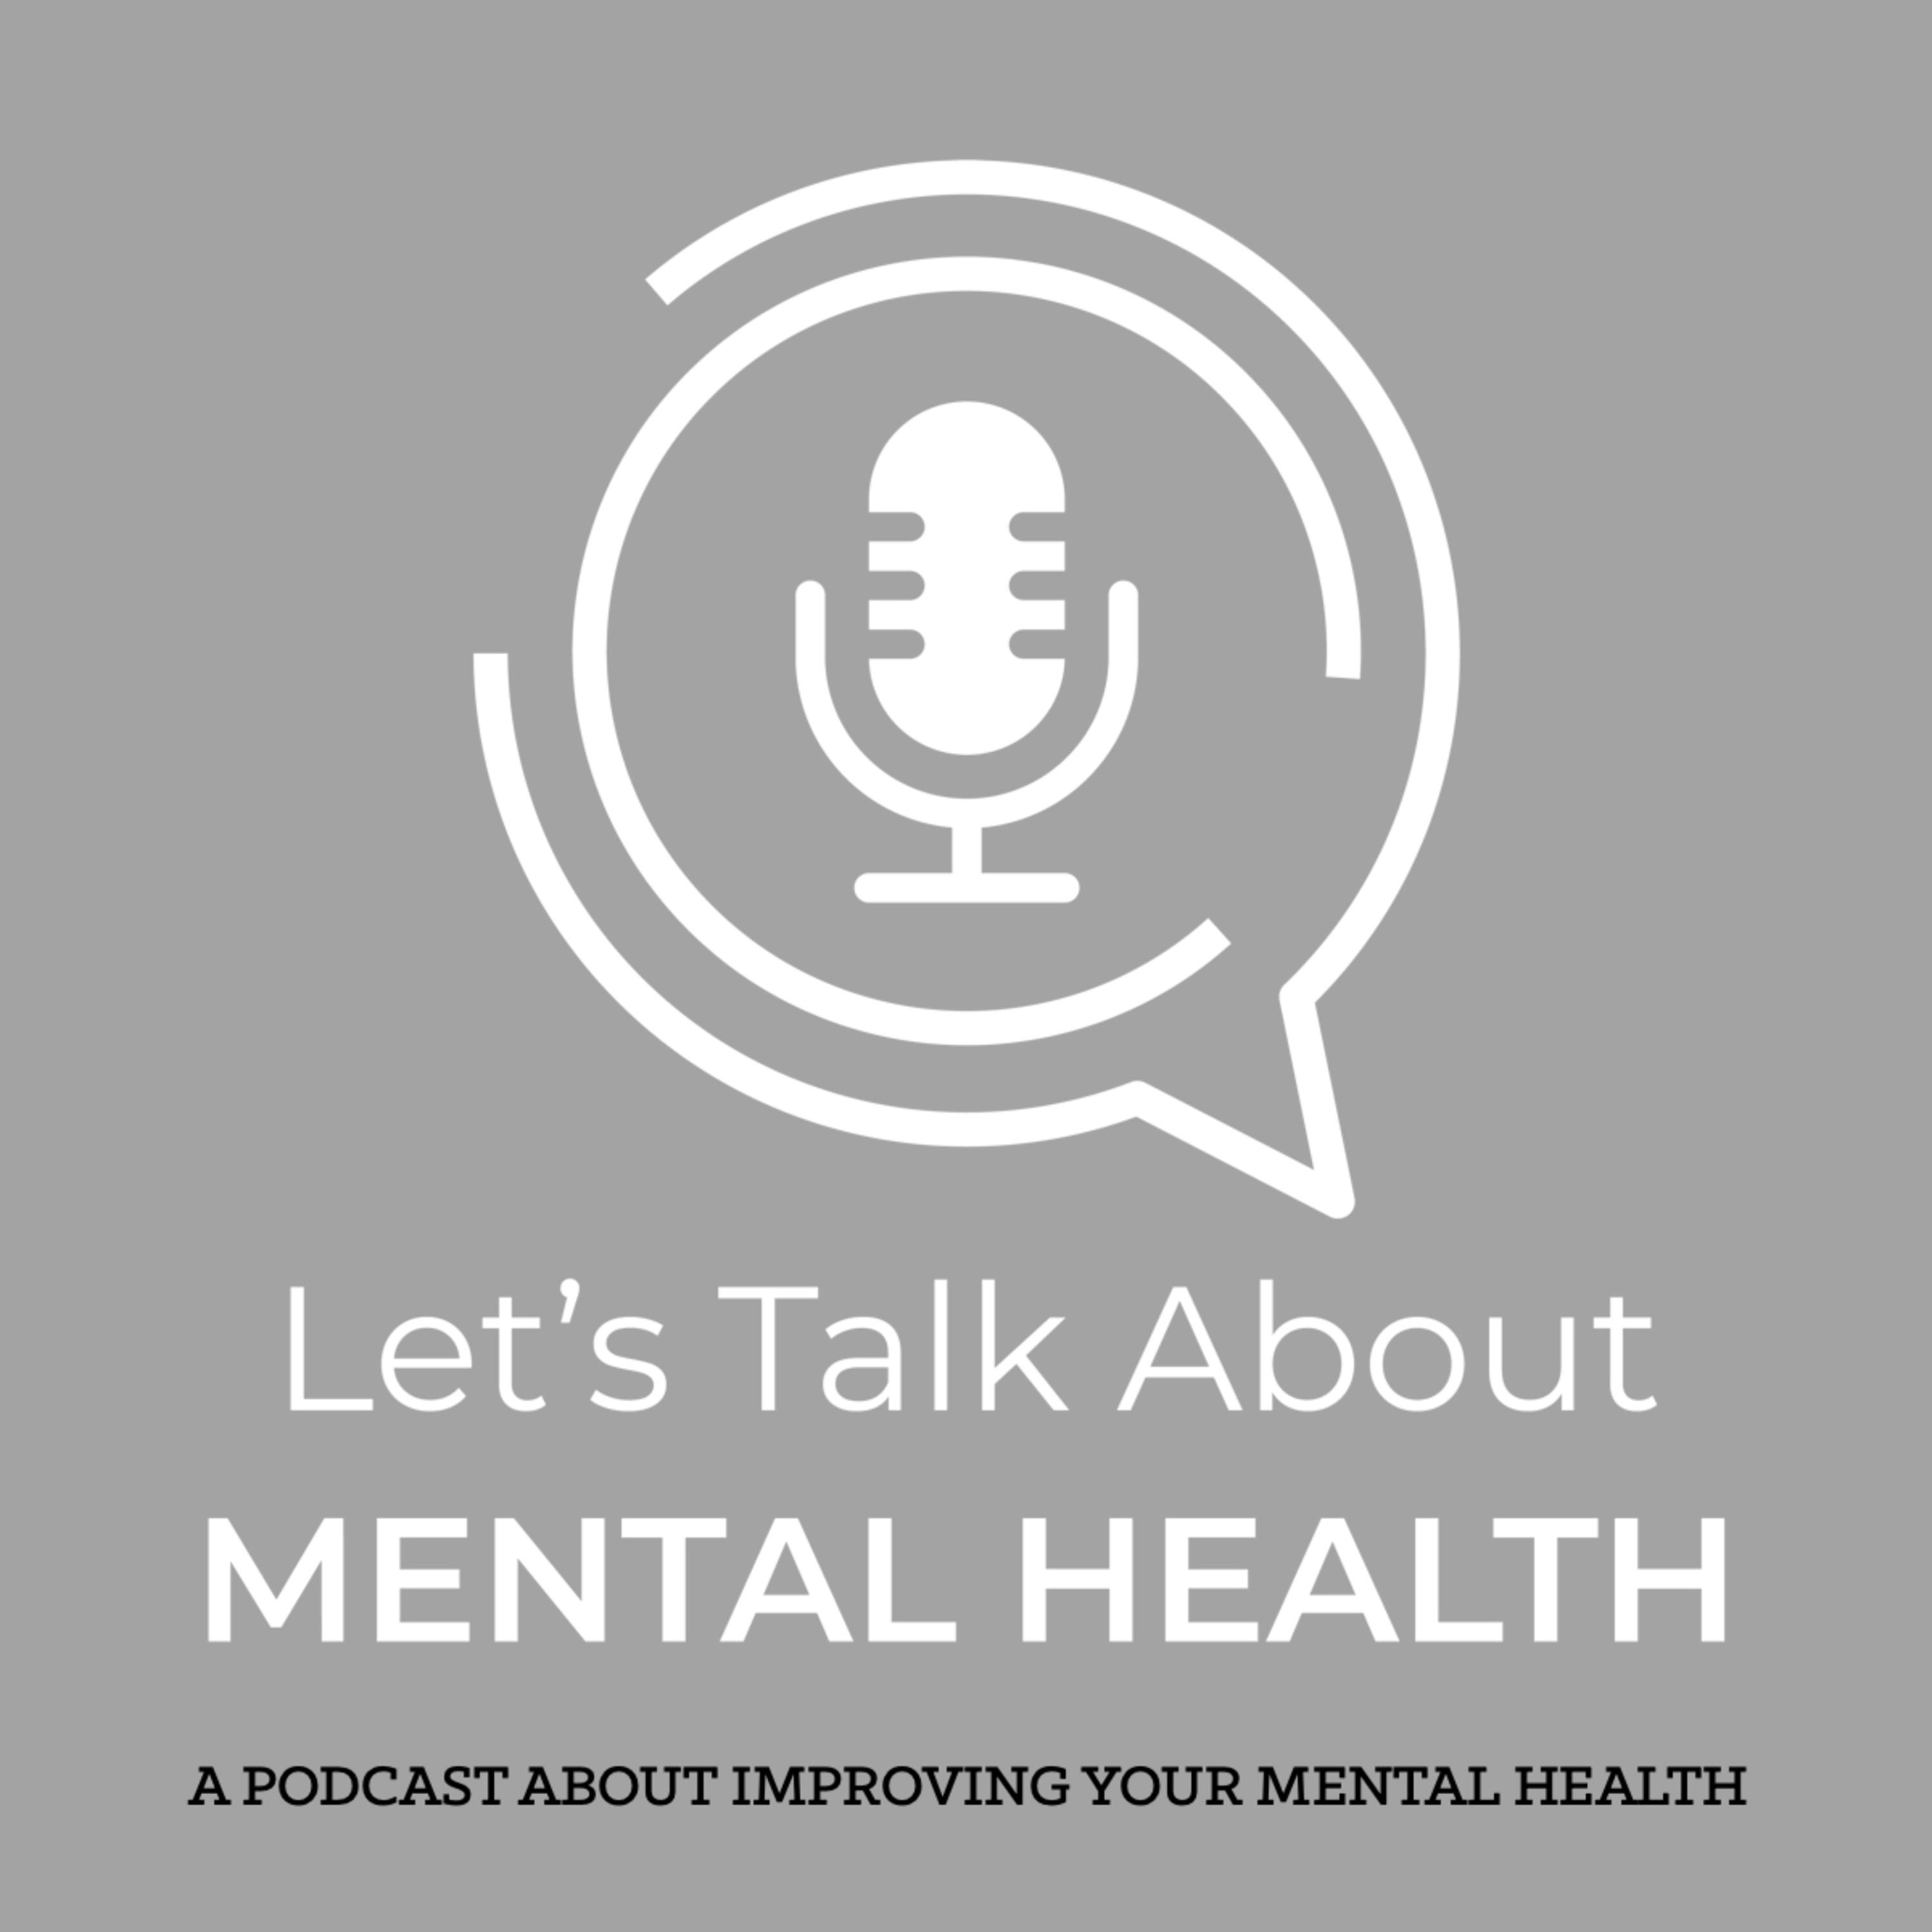 Let's Talk About Mental Health - Let's Talk About... Coronavirus